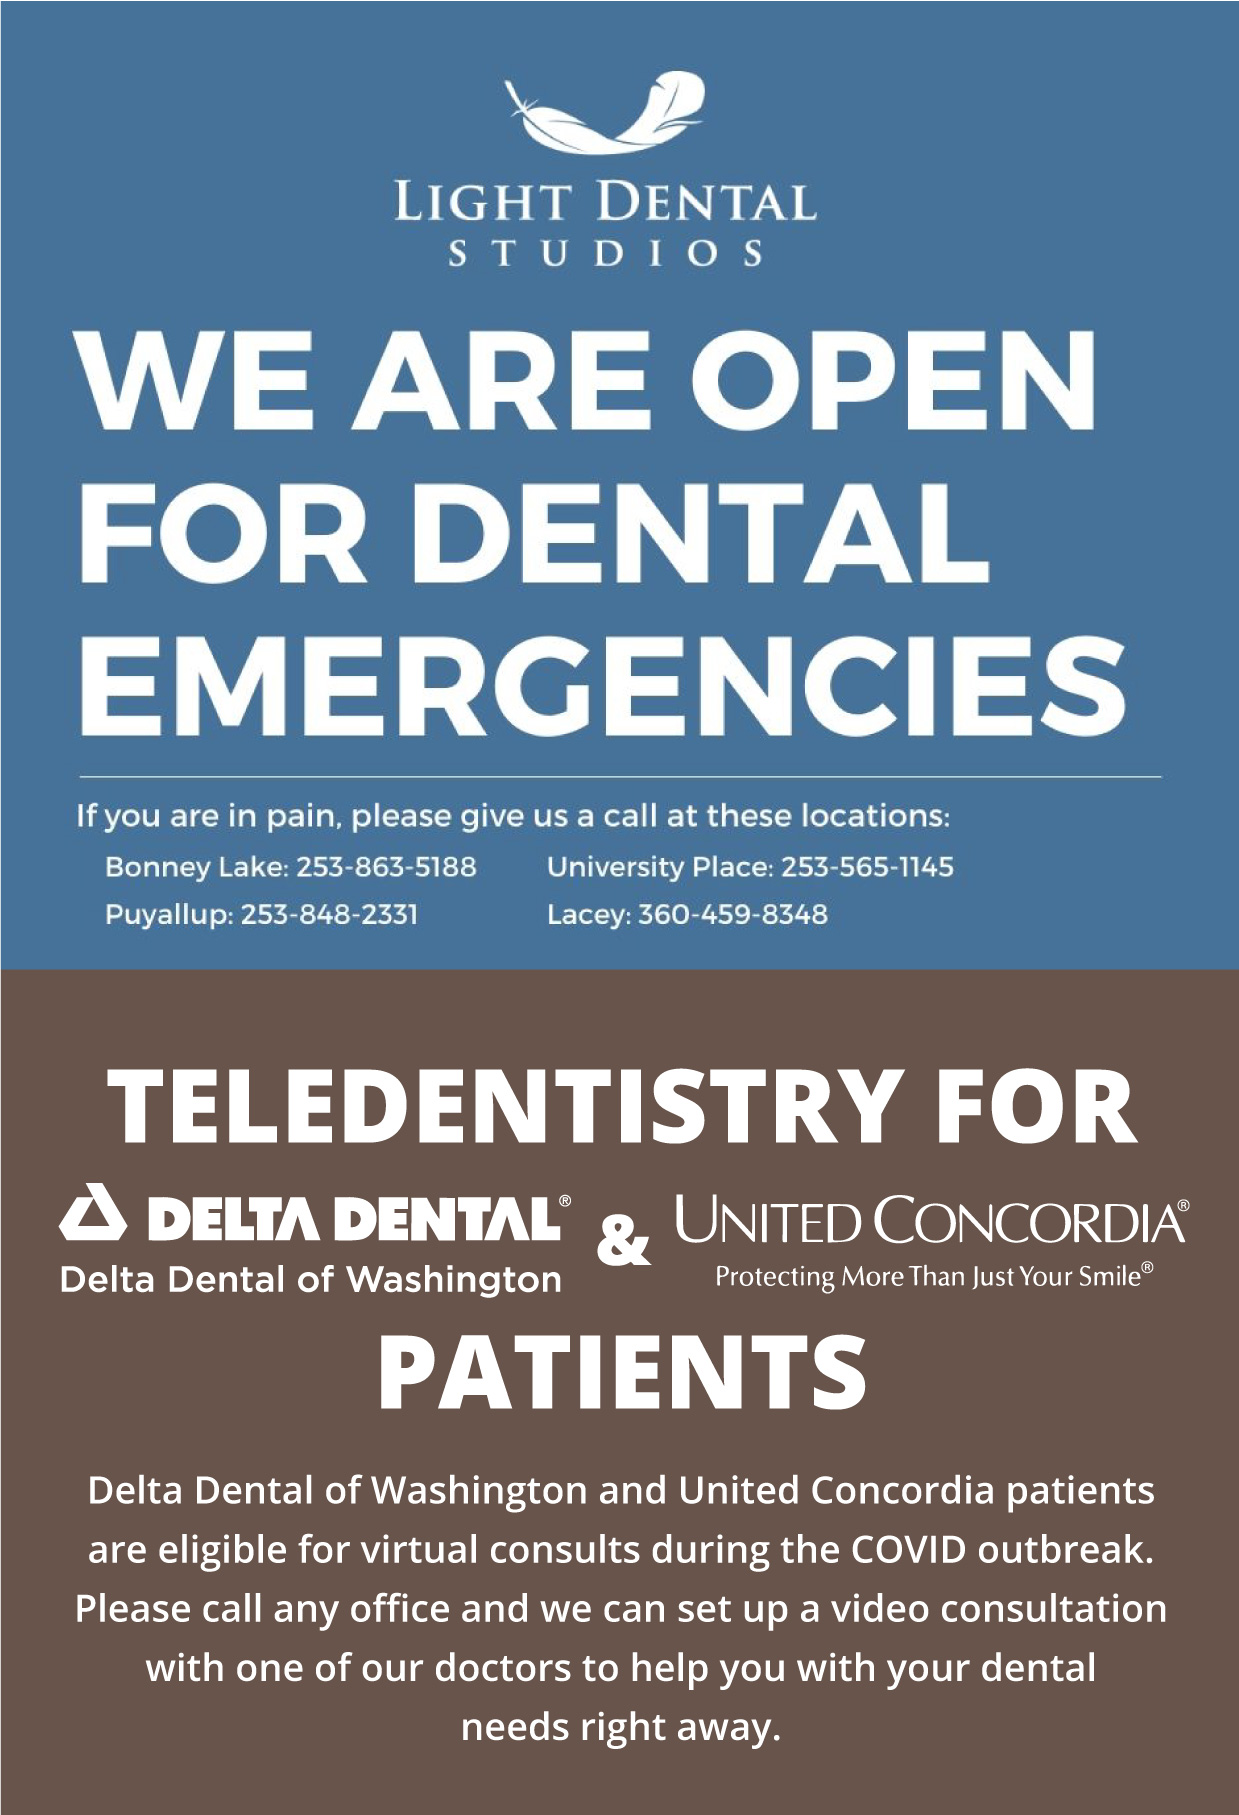 We are open for Dental Emergencies